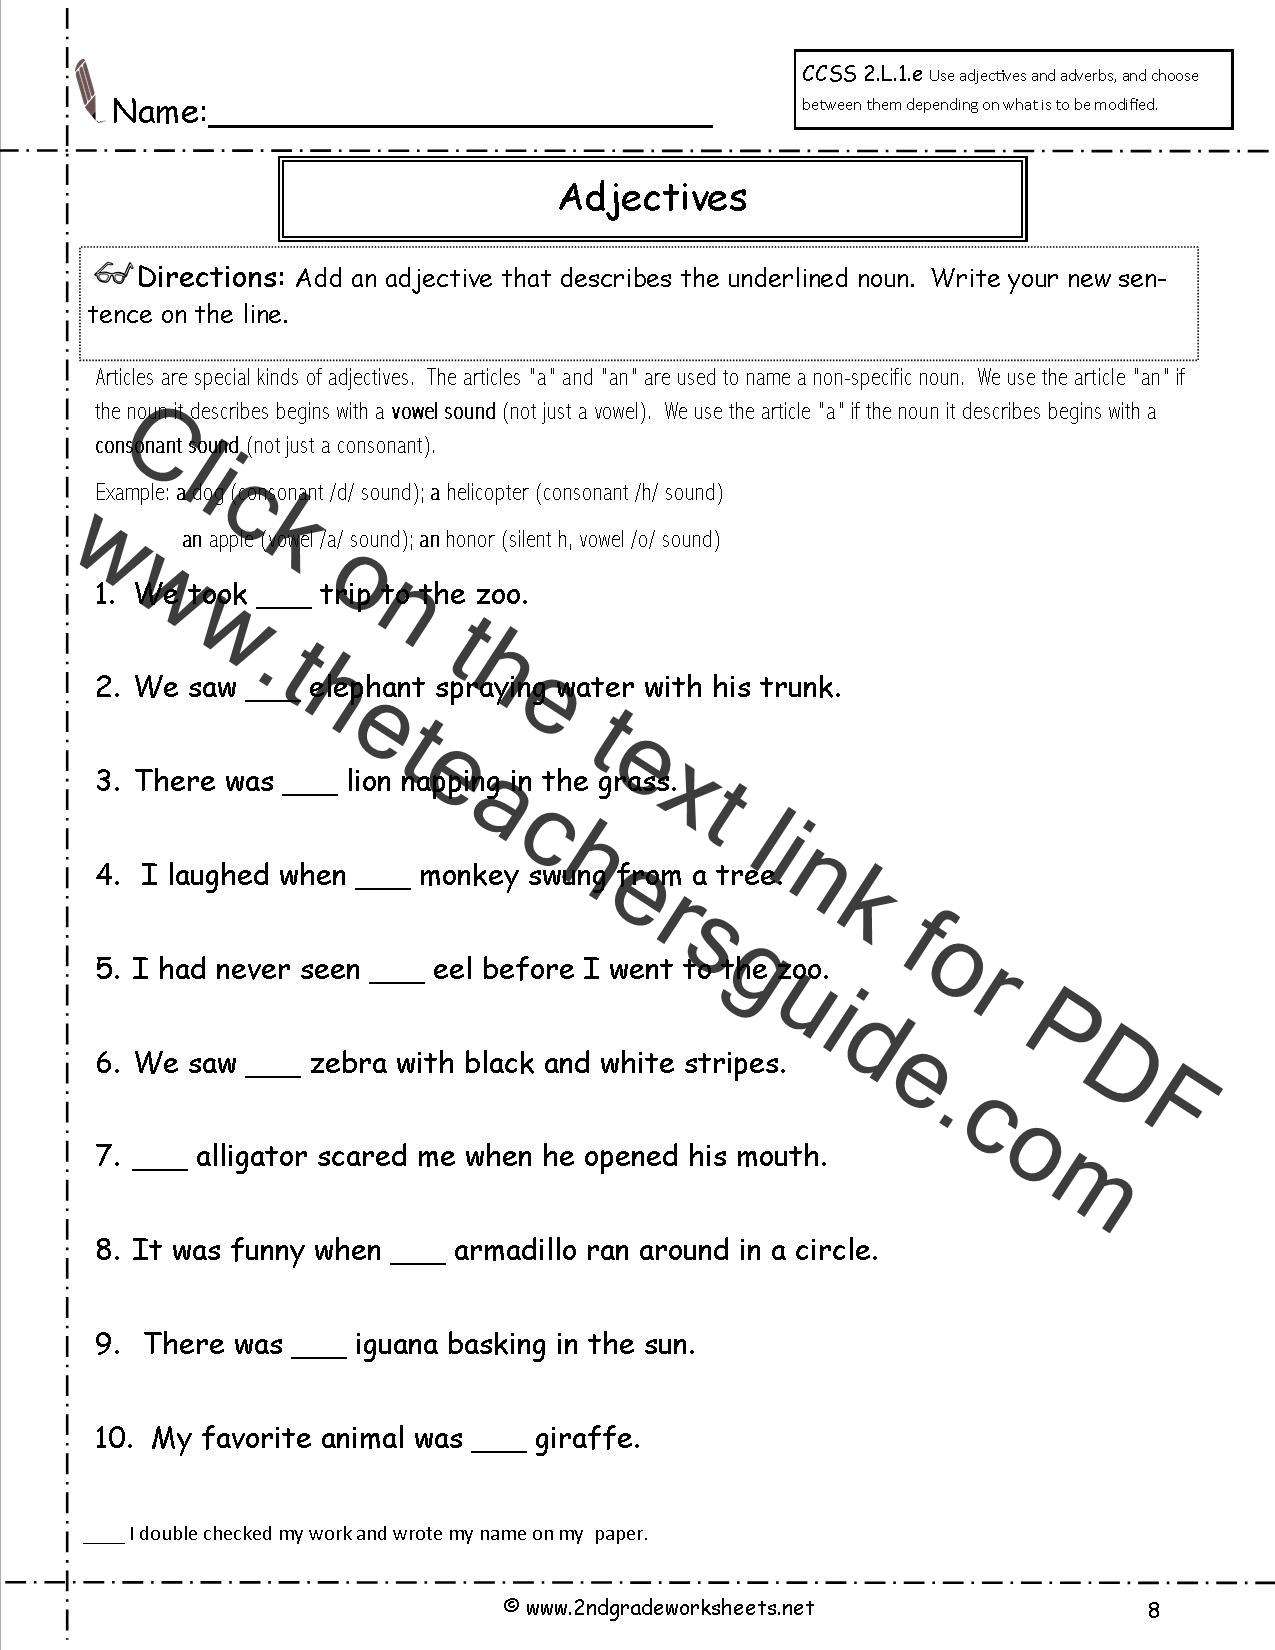 Worksheets Printable Grammar Worksheets free languagegrammar worksheets and printouts adjectives worksheets